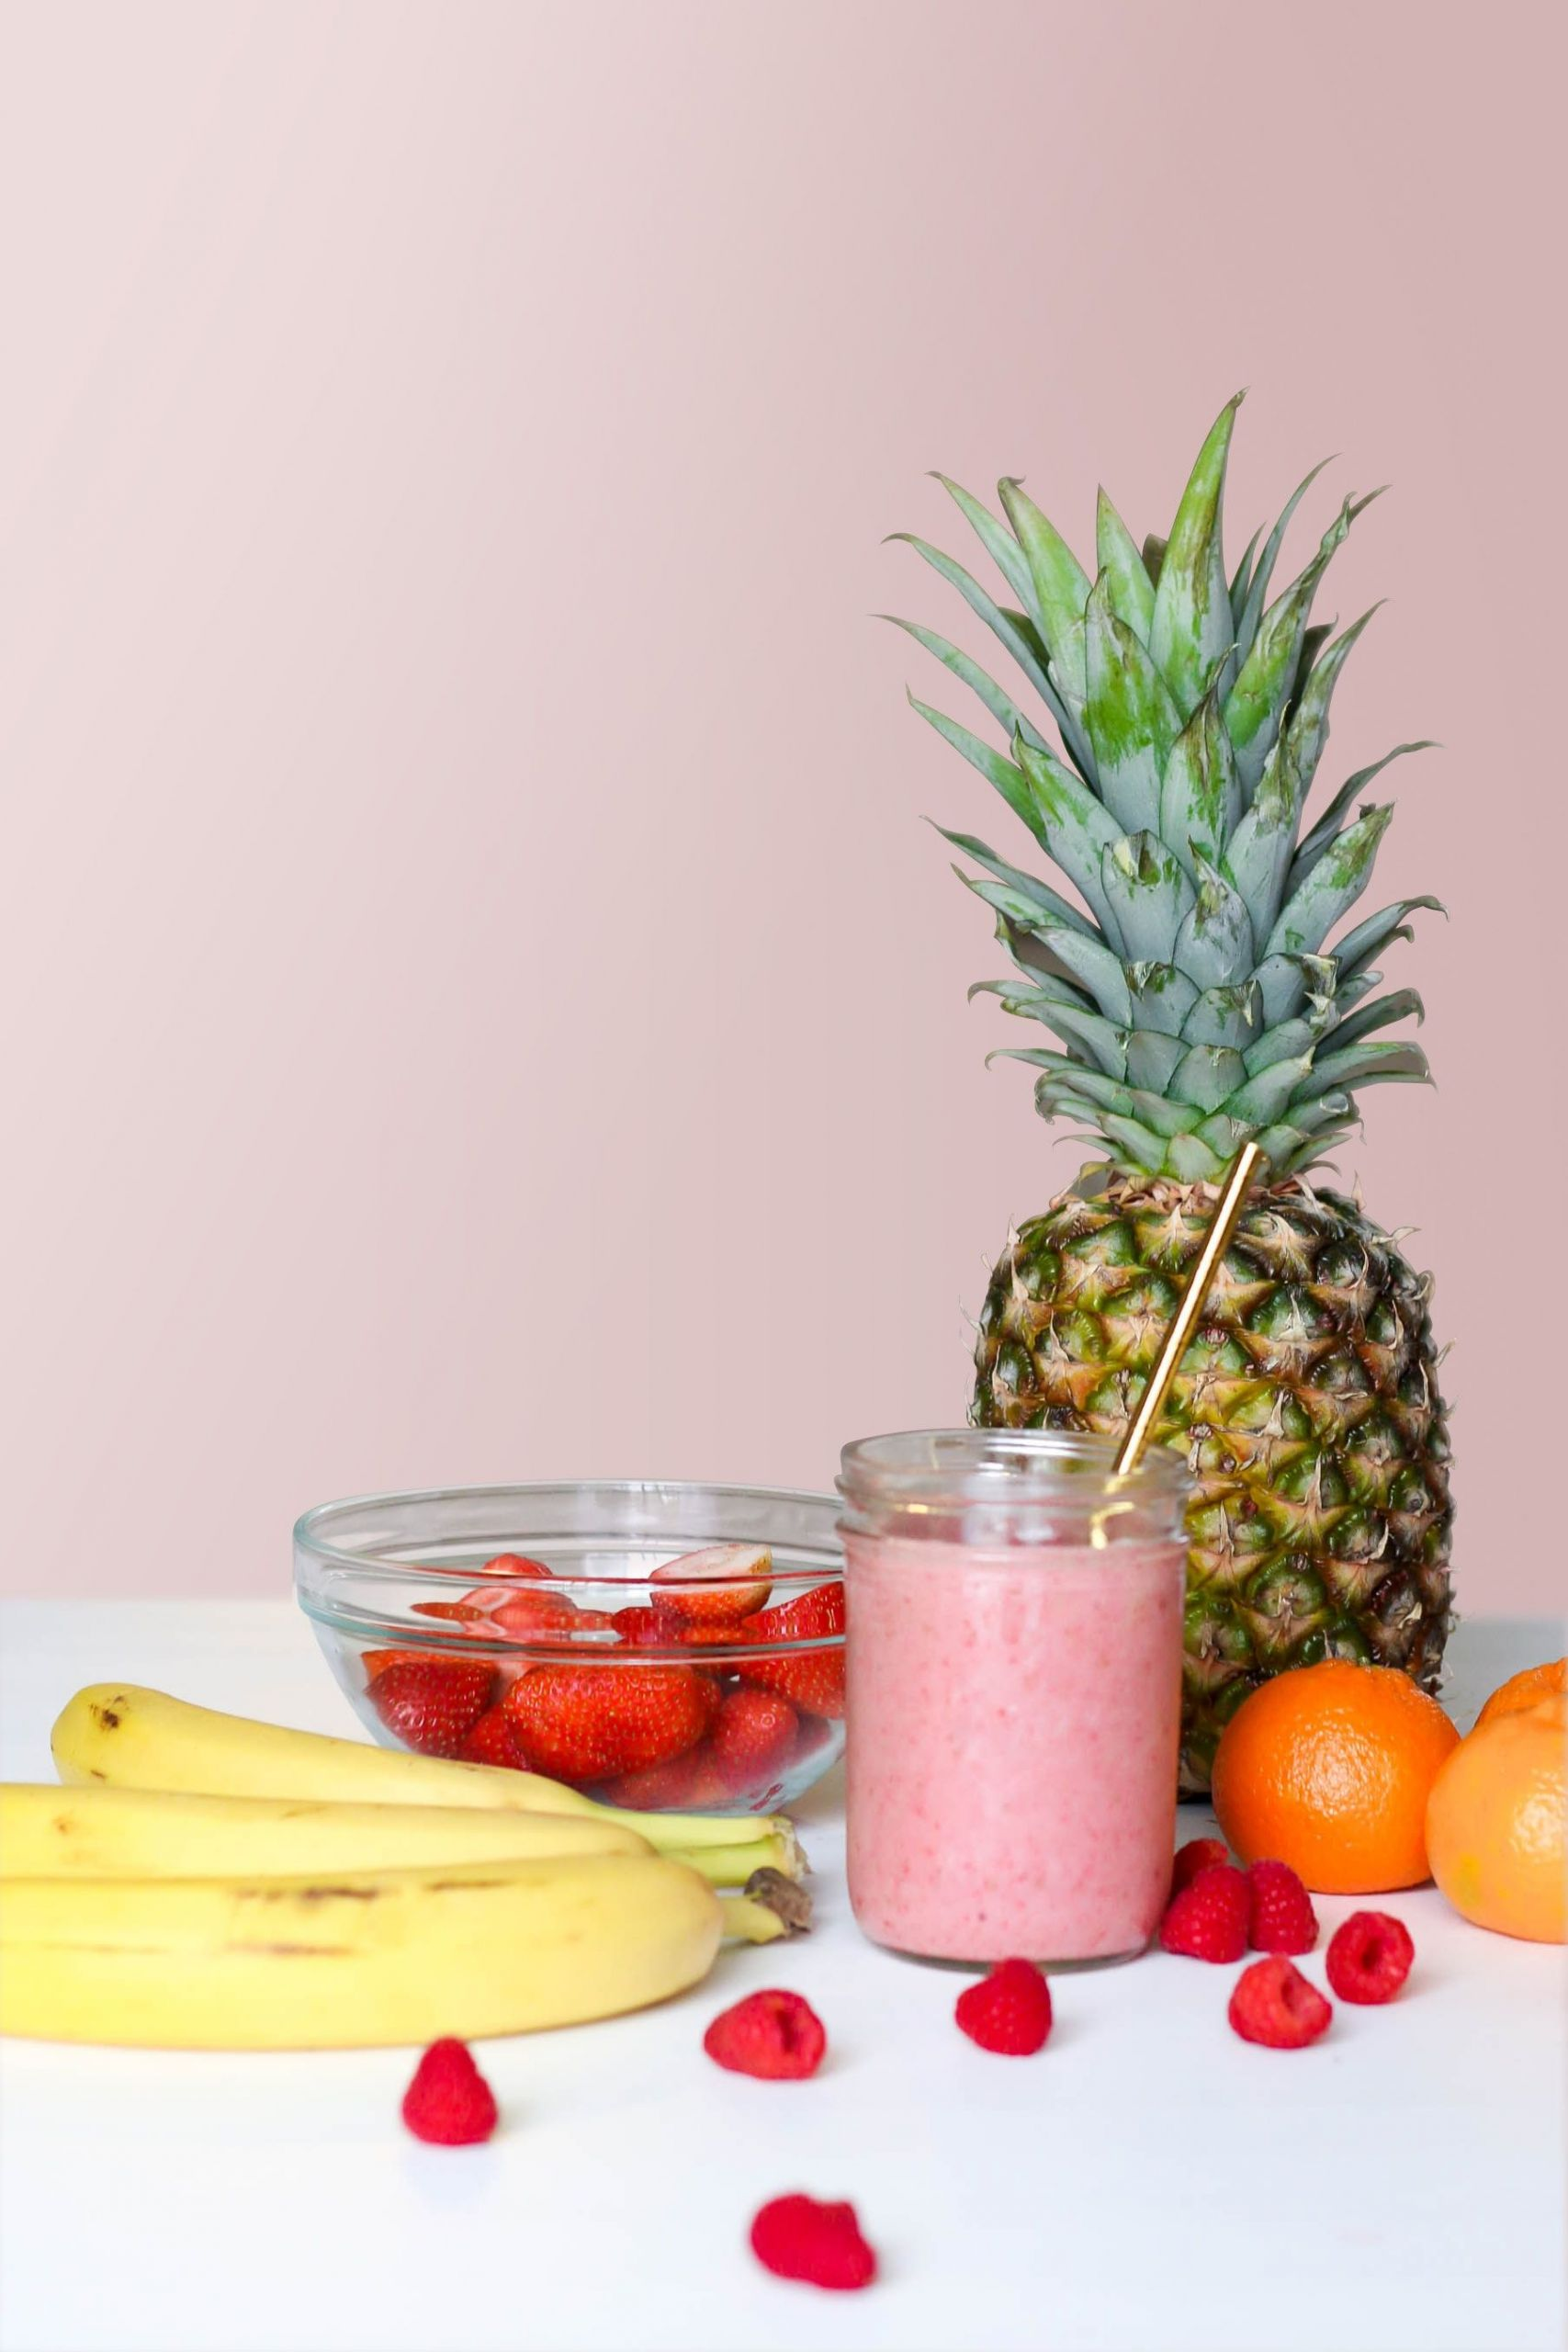 A smoothie pictured with different fruits